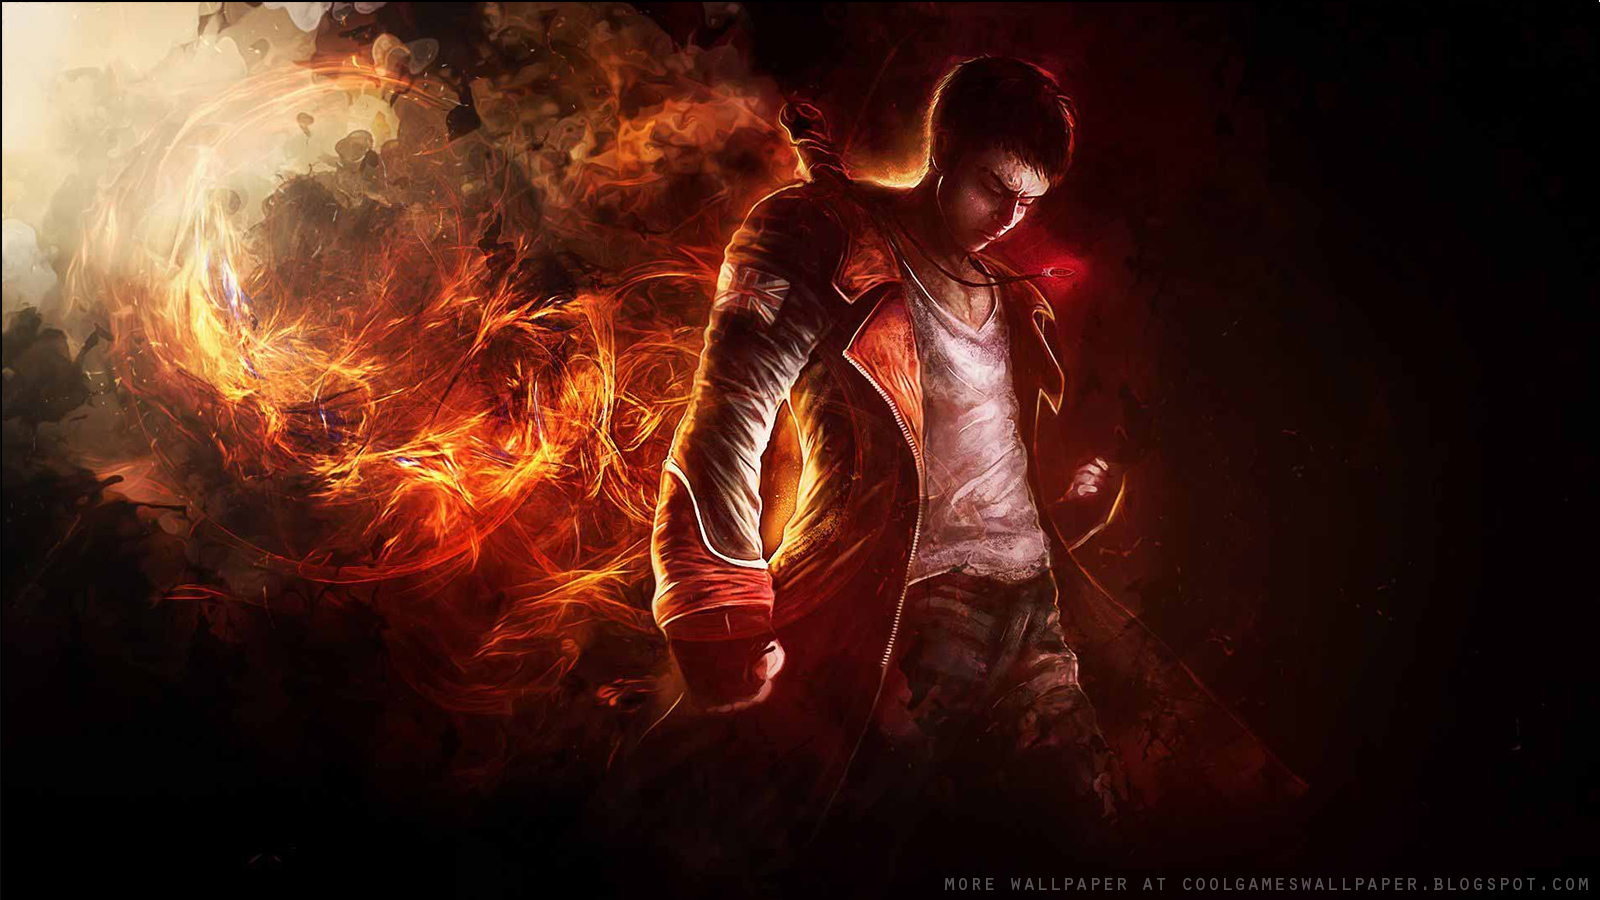 Dmc devil may cry 2013 wallpaper cool games wallpaper - Devil may cry hd pics ...